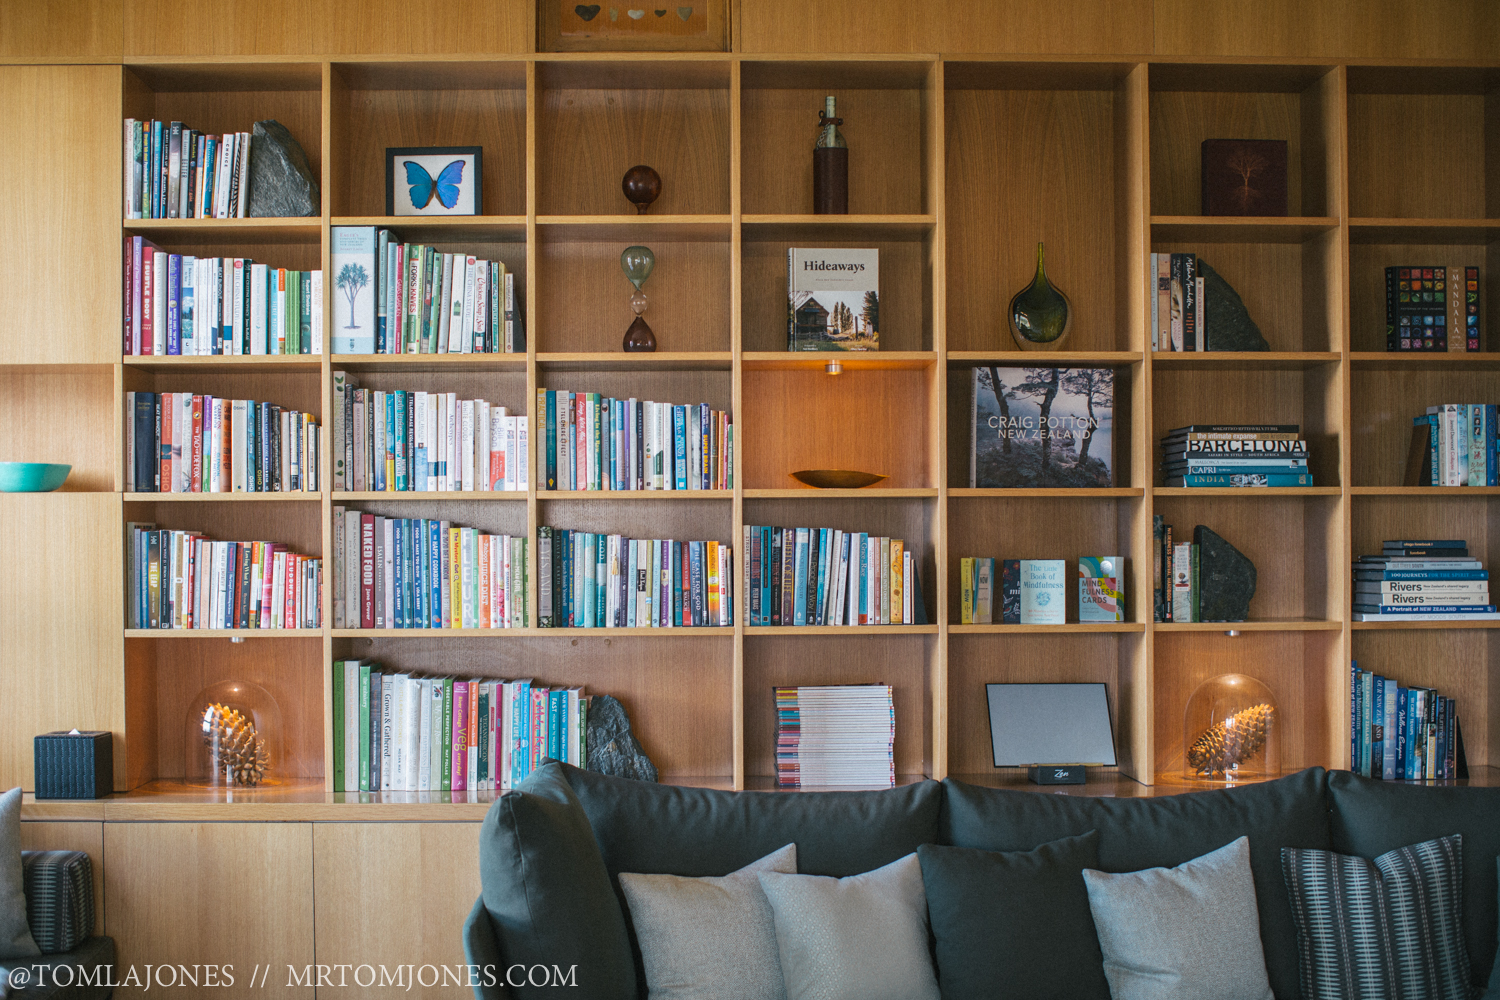 The library at Aro Ha is literally full of wonderful books to ignite your passion and inspire your soul.